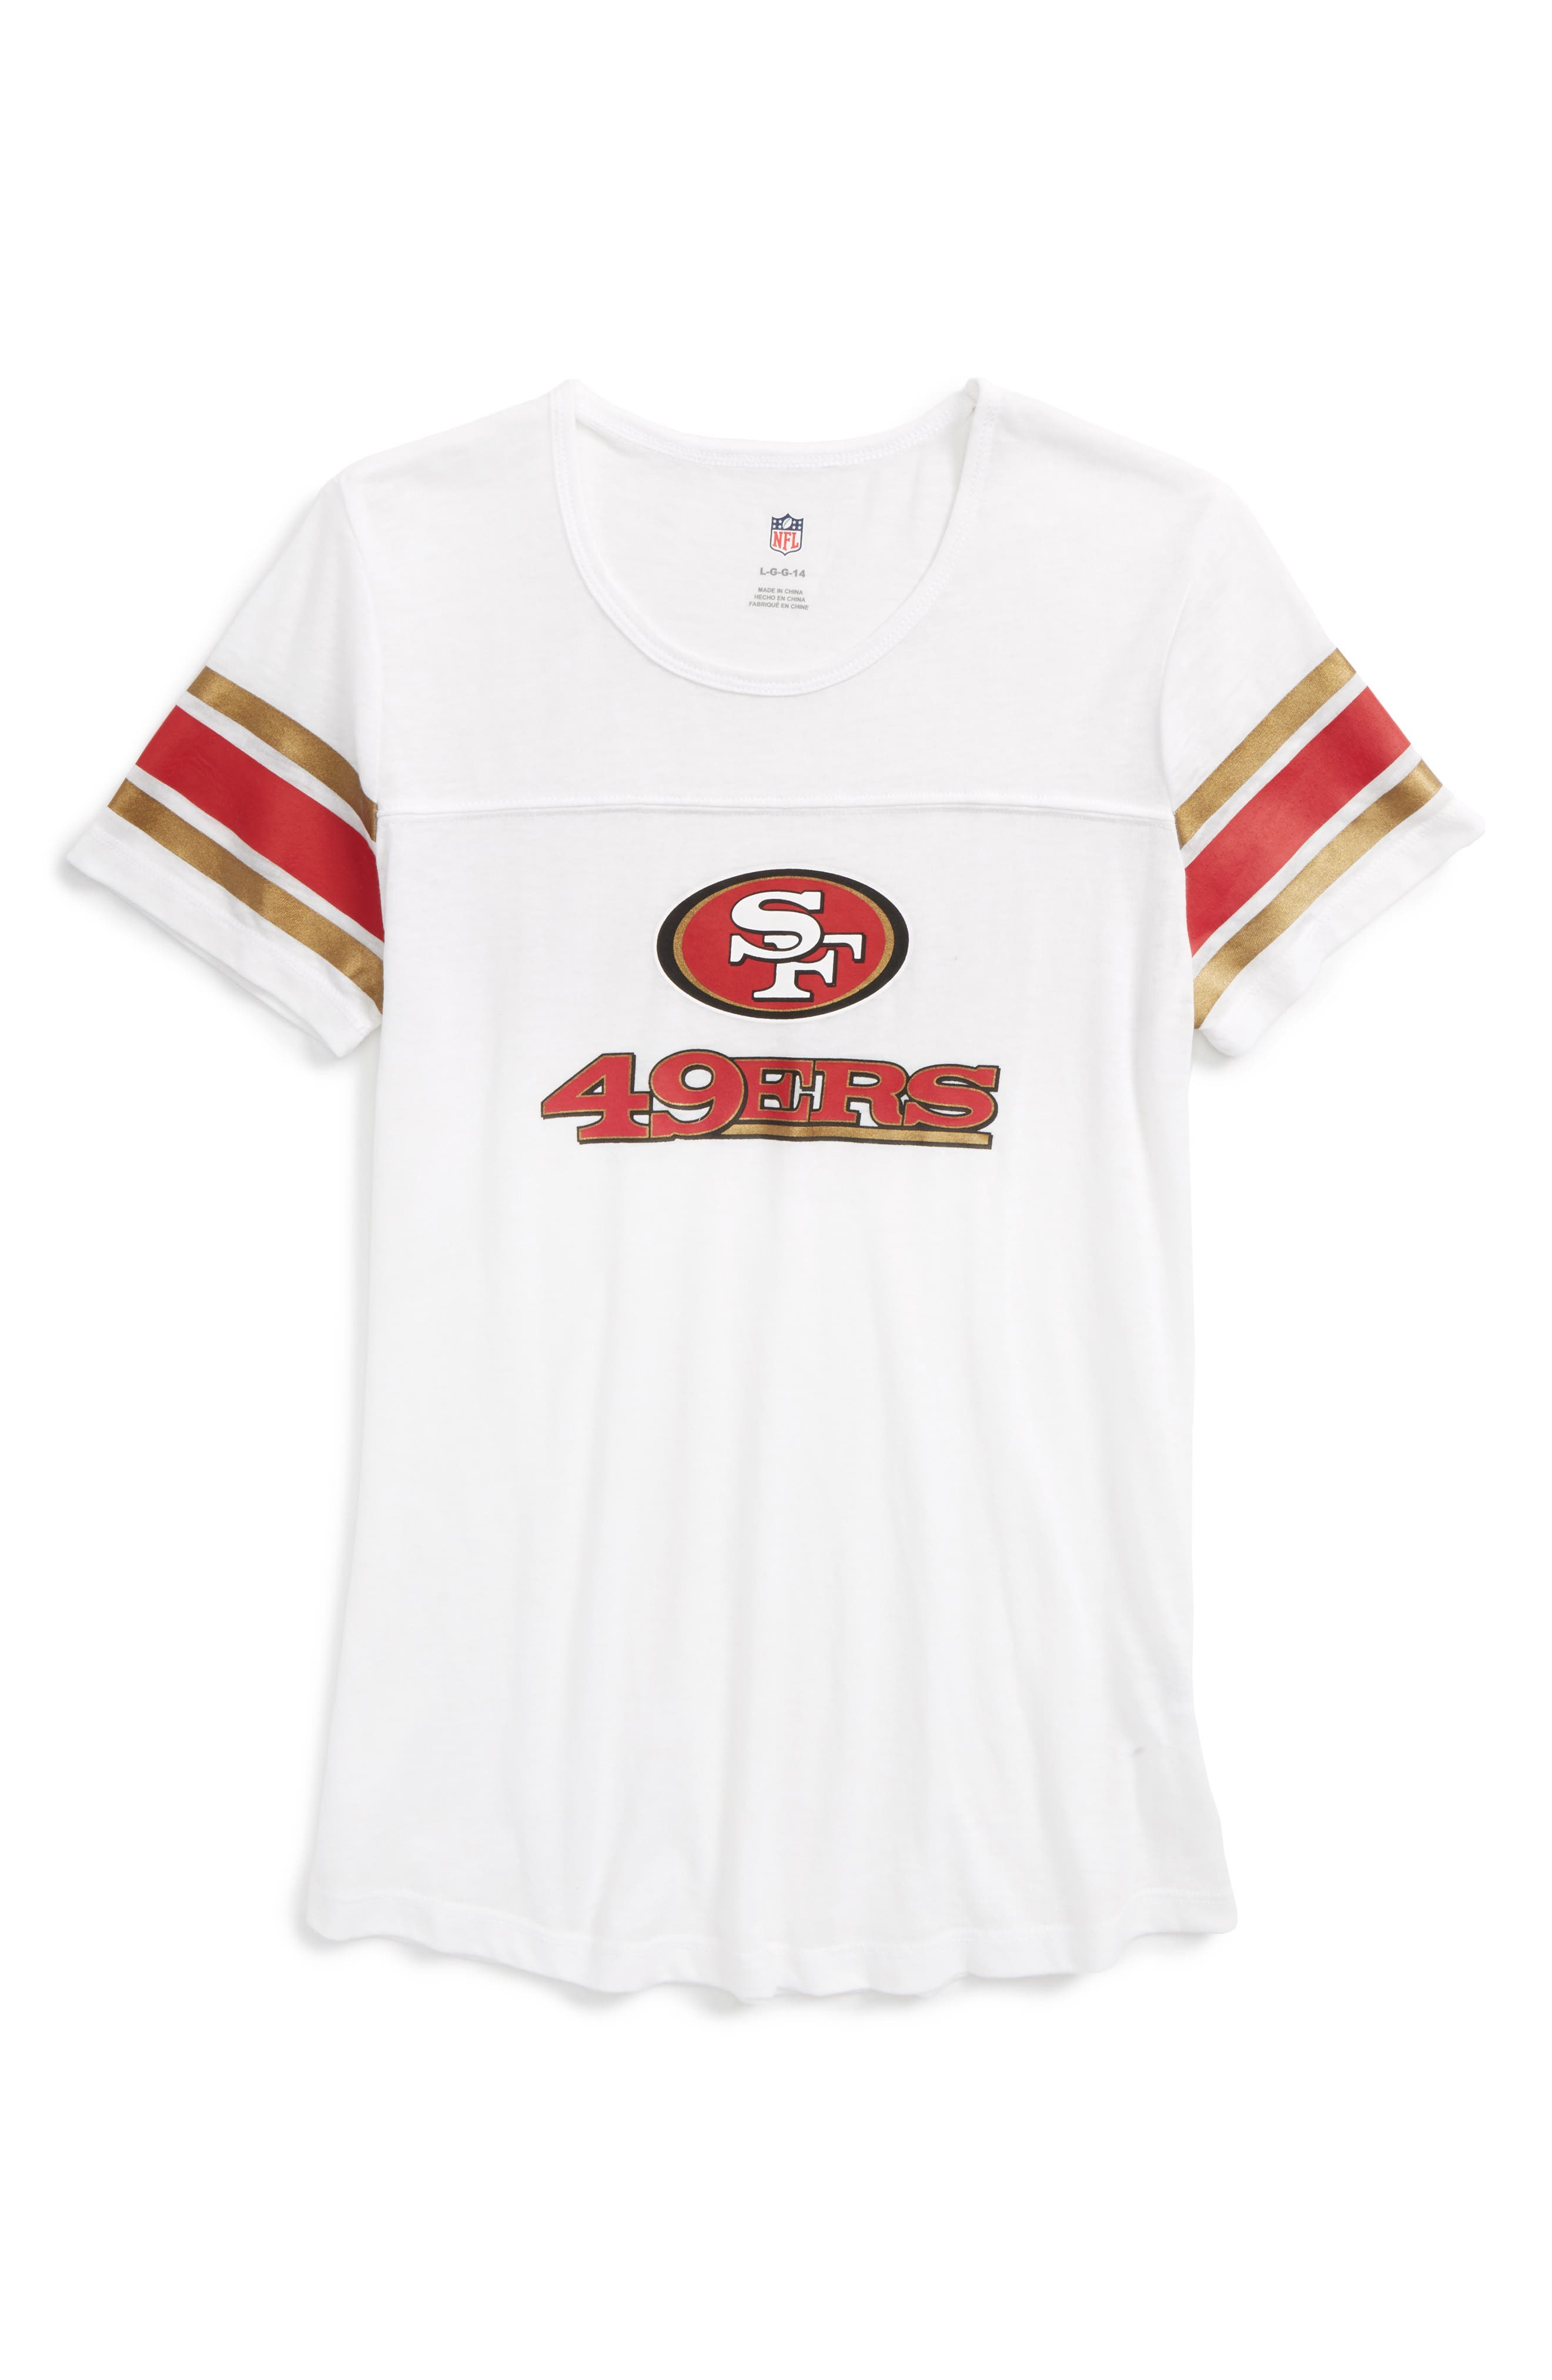 Main Image - Outerstuff NFL San Francisco 49ers Team Pride Tee (Big Girls)